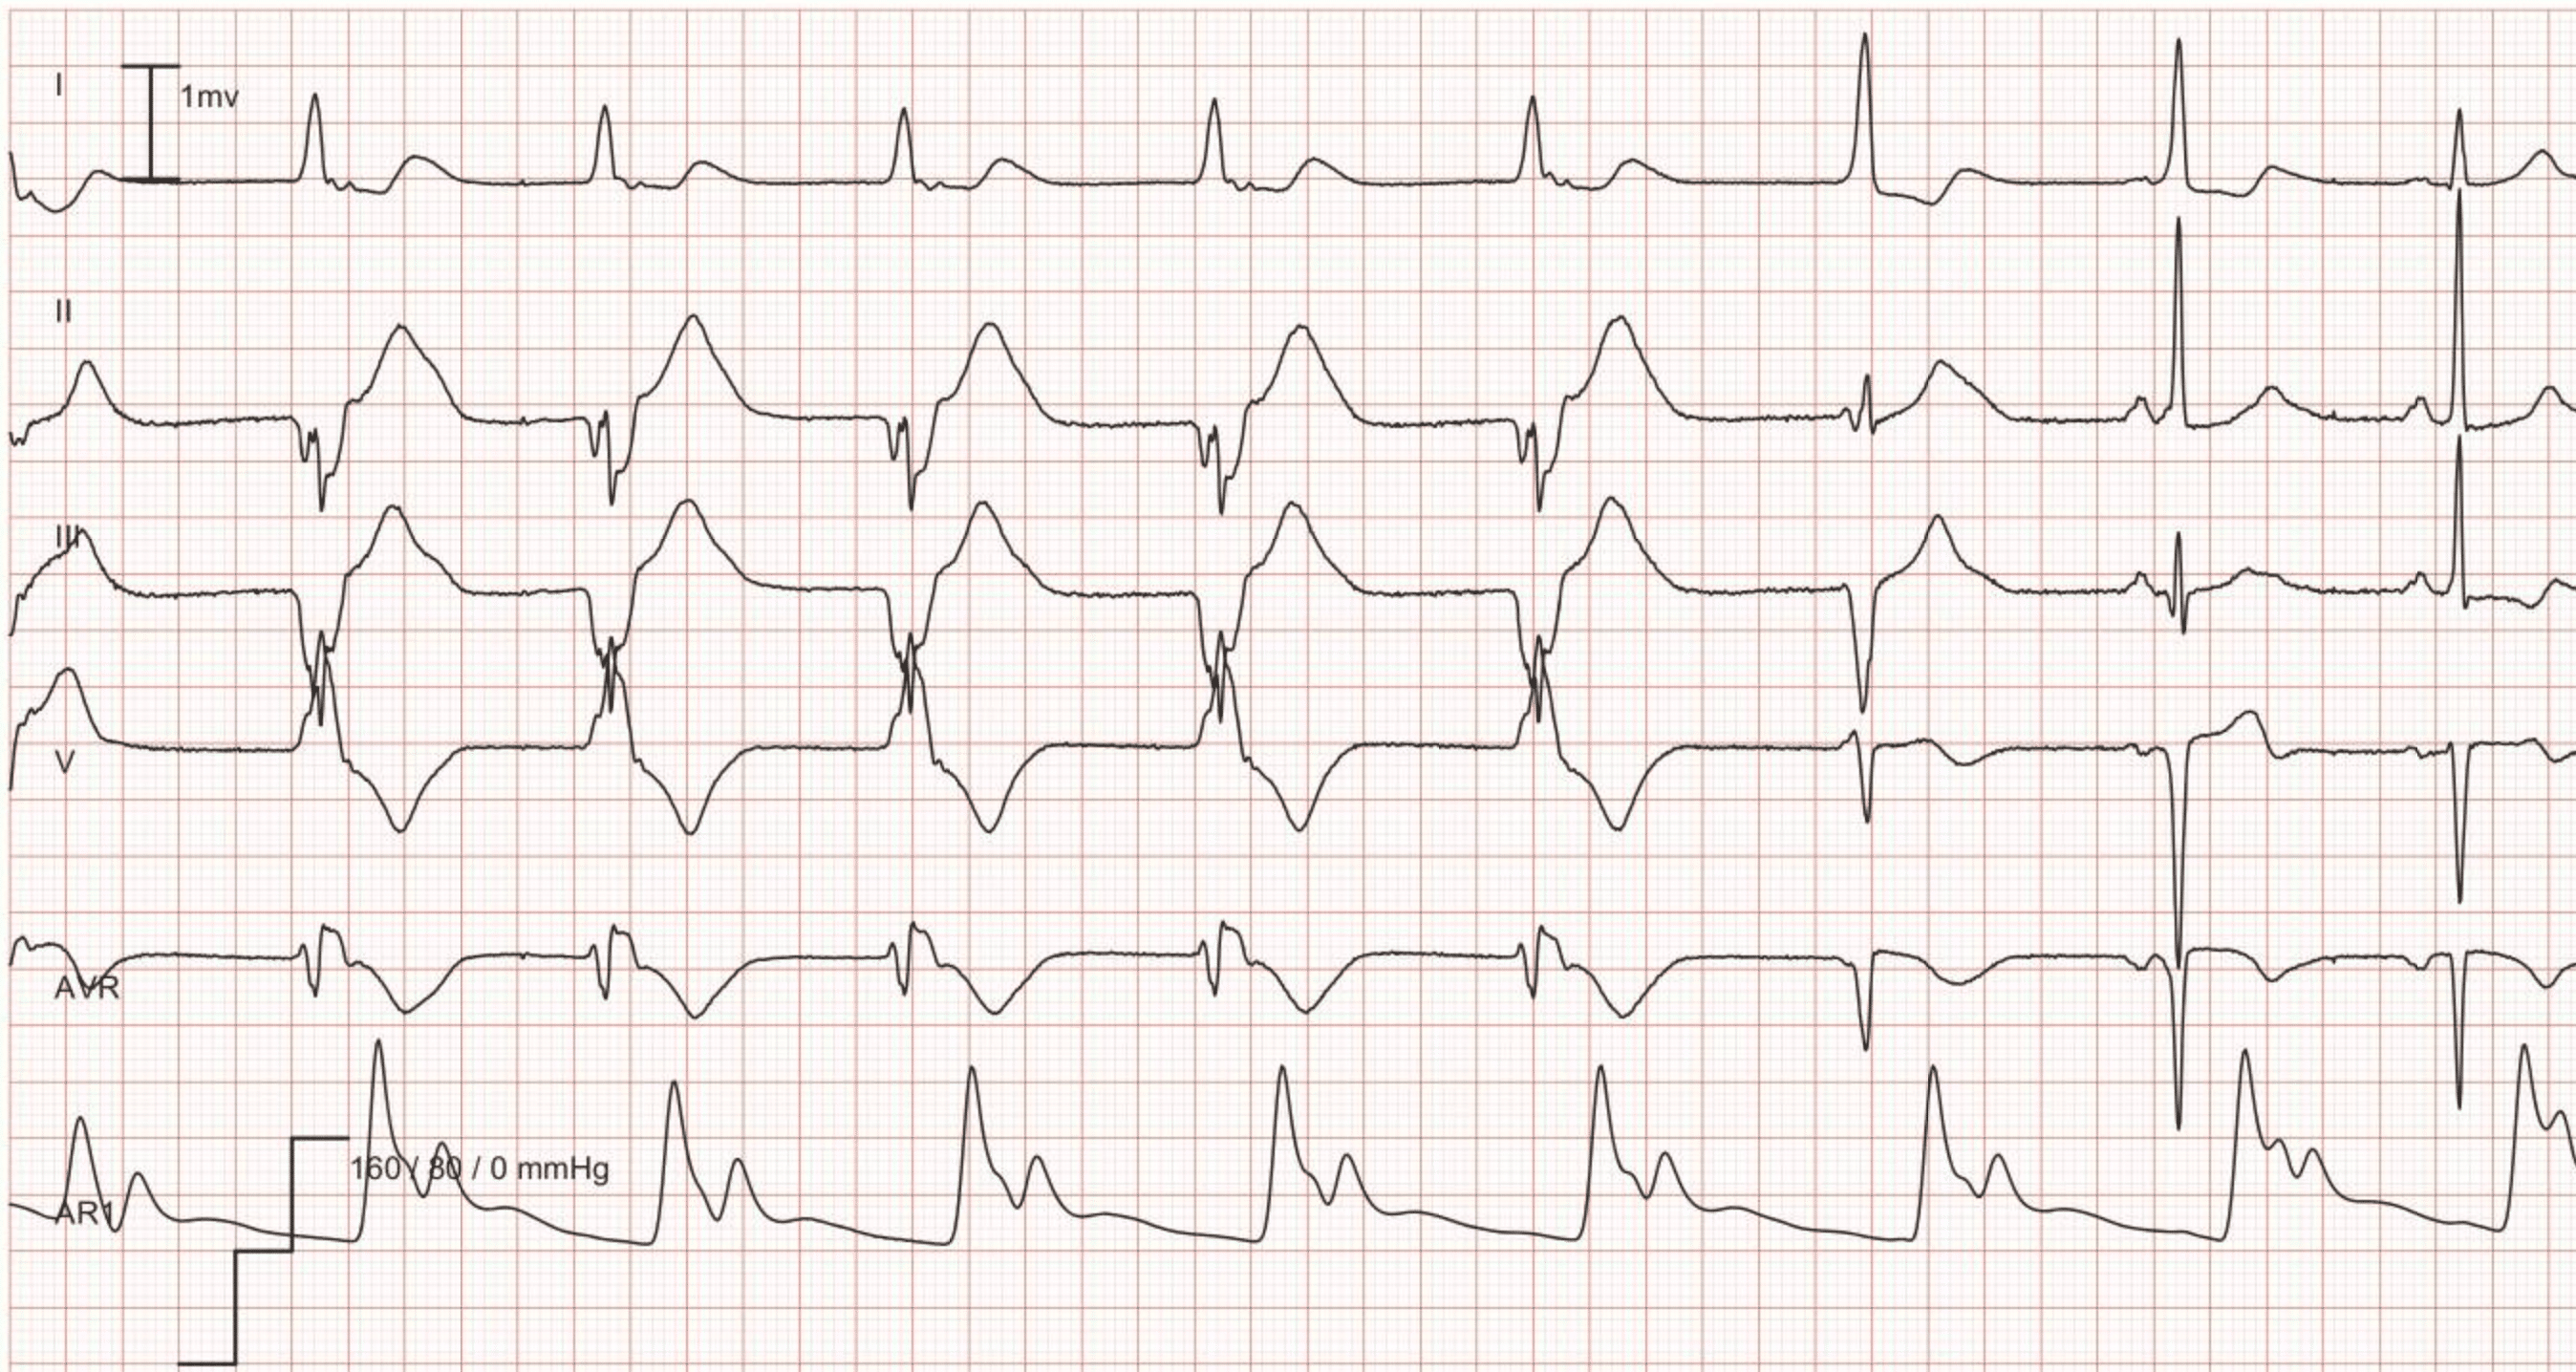 ECG Example: Idioventricular rhythm (accelerated ventricular rhythm) – Accelerated ventricular rhythm at a rate of 56 for the first 5 beats followed by 2 fusion beats; the last 2 beats are normal sinus rhythm.